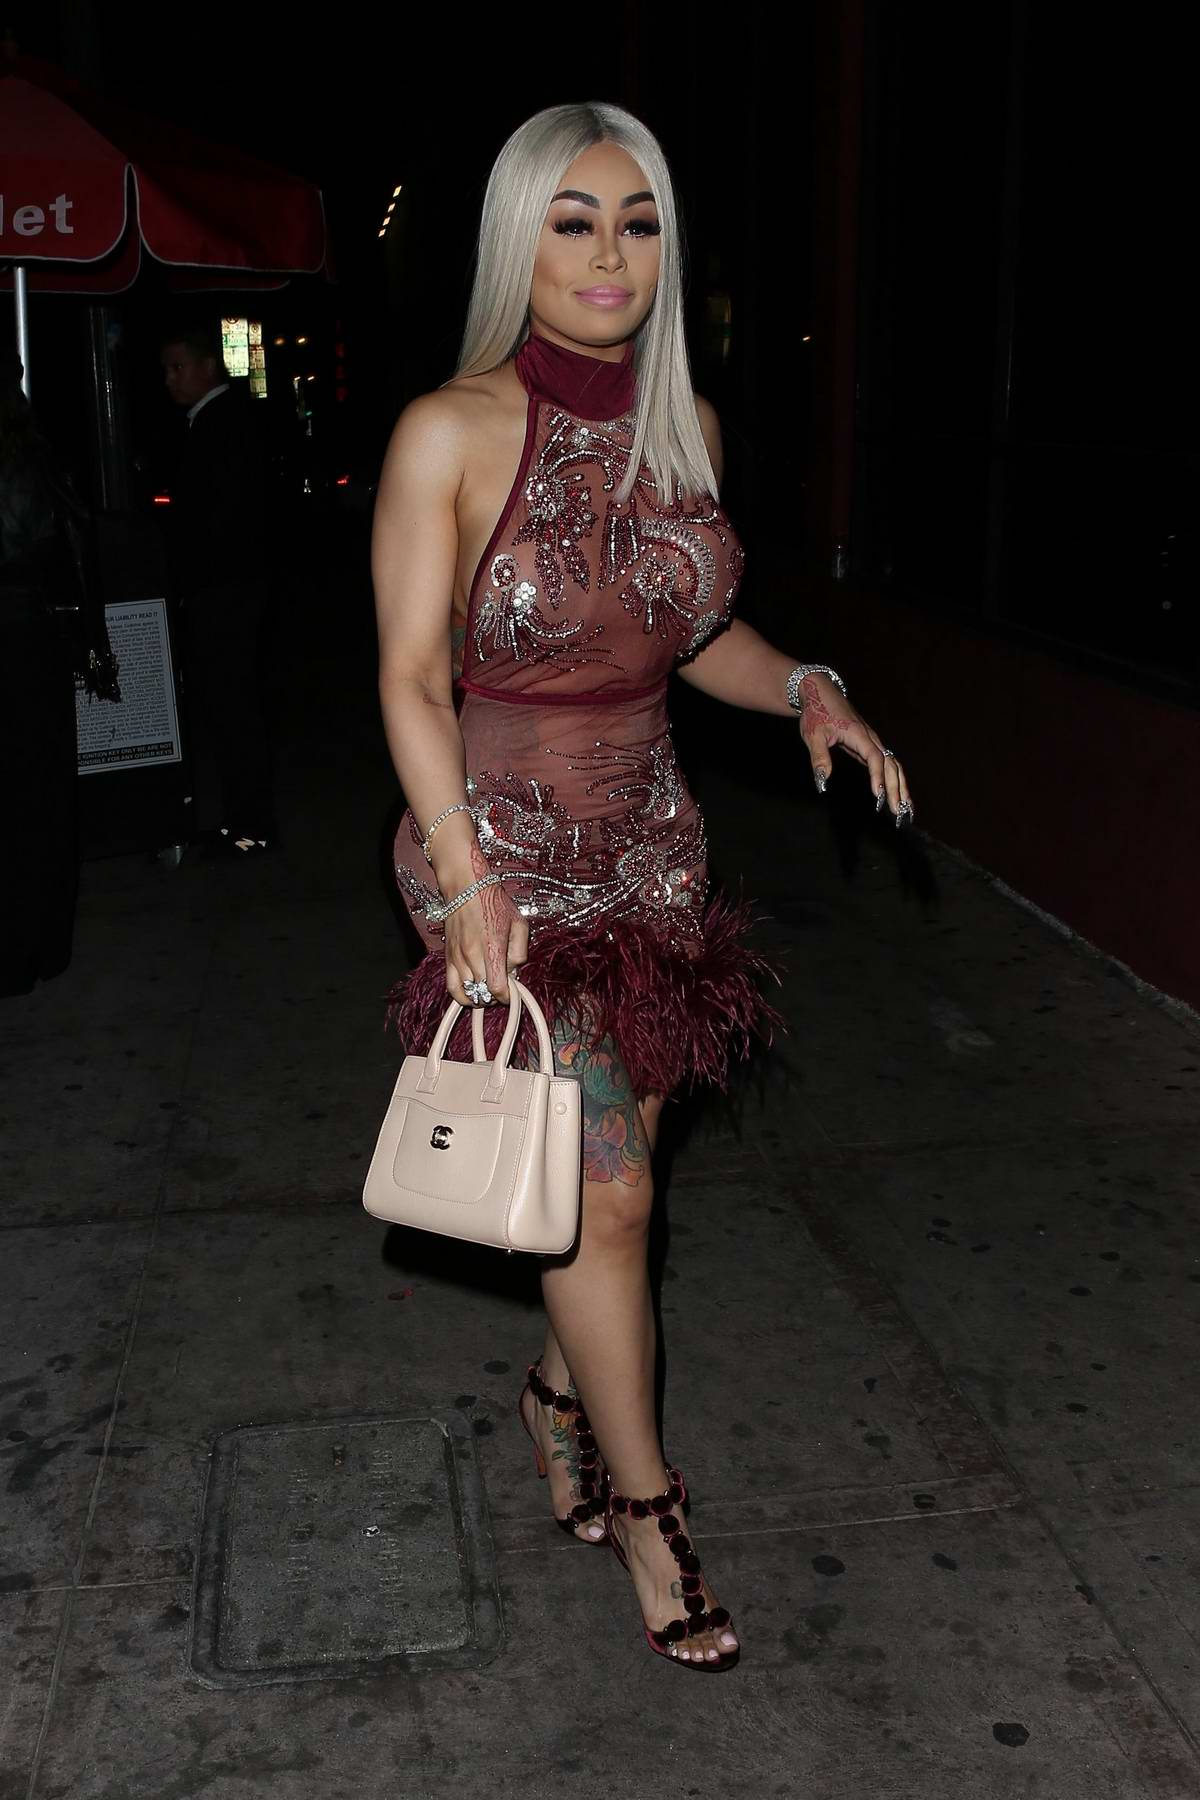 Blac Chyna wears a sheer red dress while out to dinner during a night out in Beverly Hills, Los Angeles